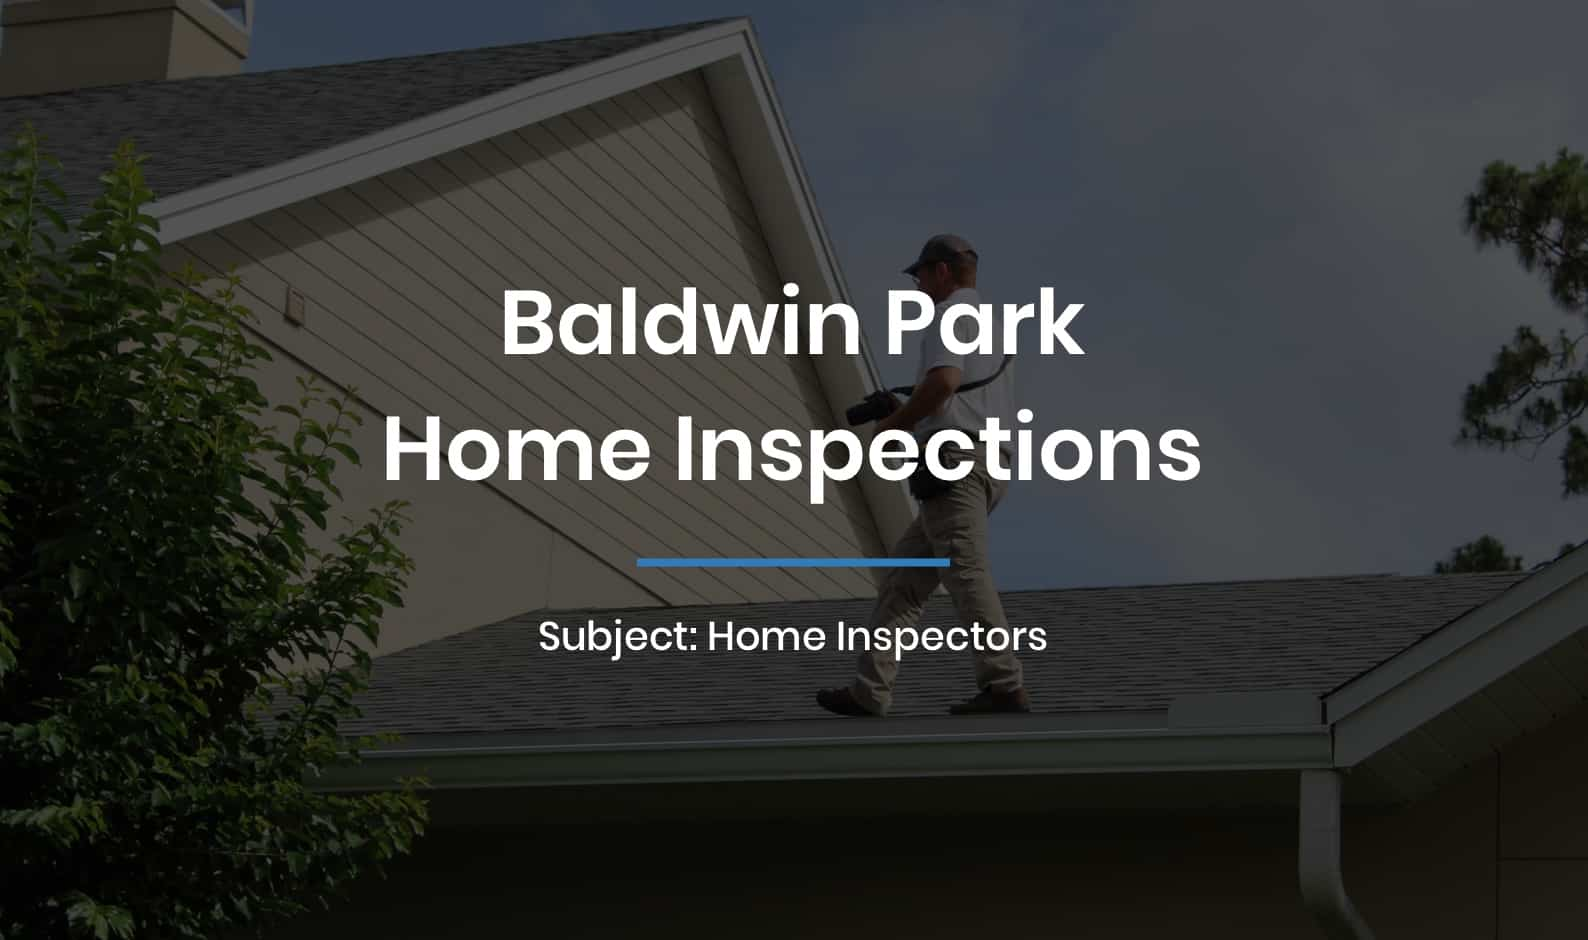 Baldwin Park Home Inspections